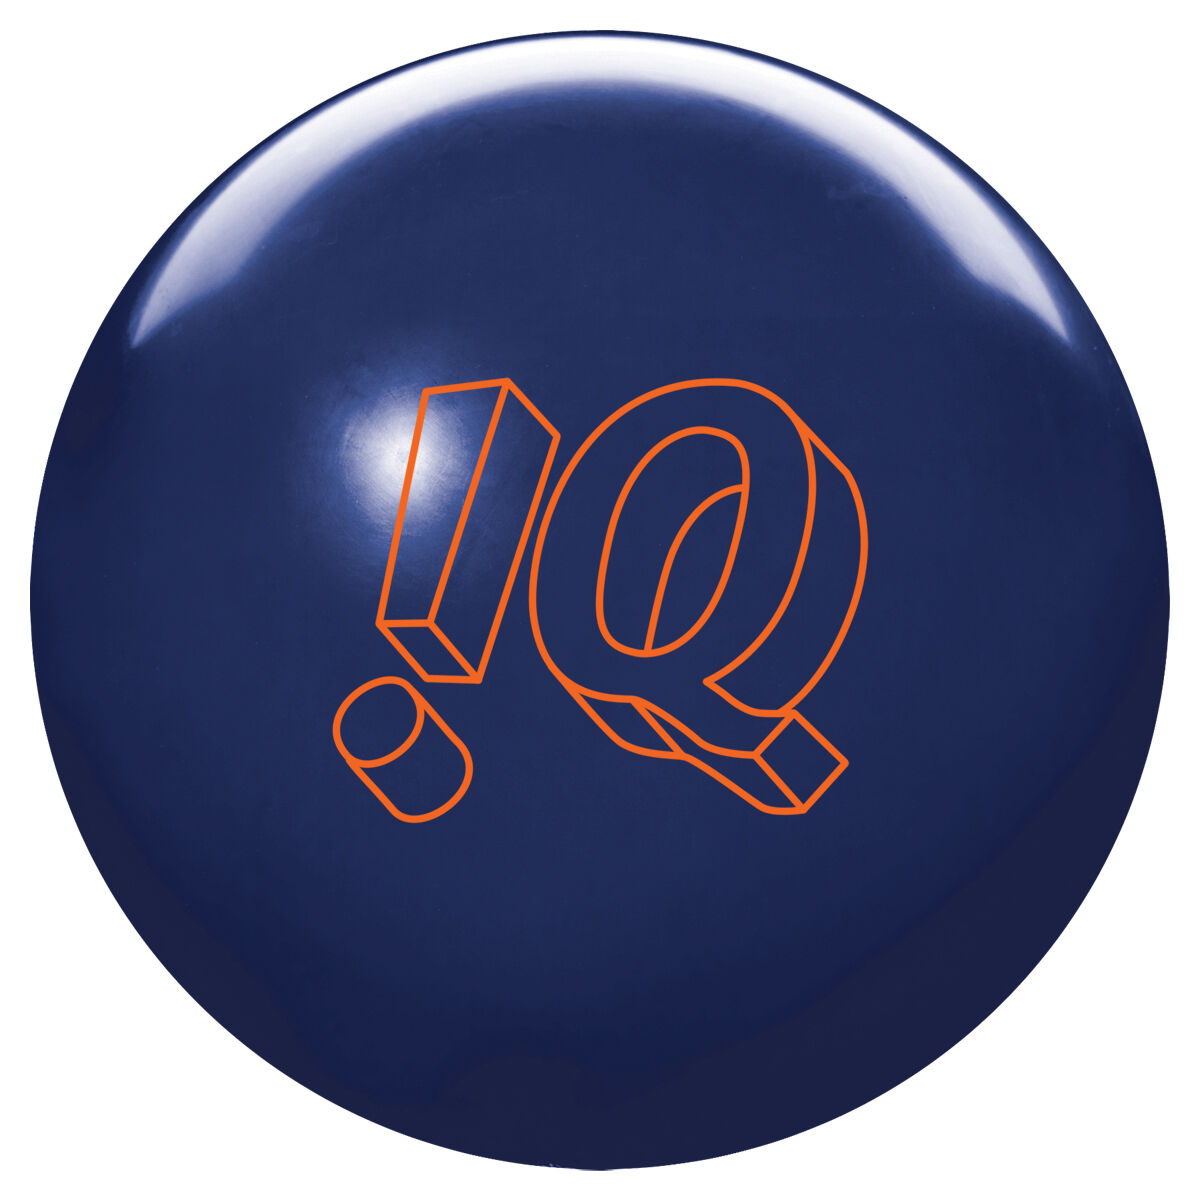 15lb Storm IQ Tour Midnight blueee Solid Reactive Bowling Ball